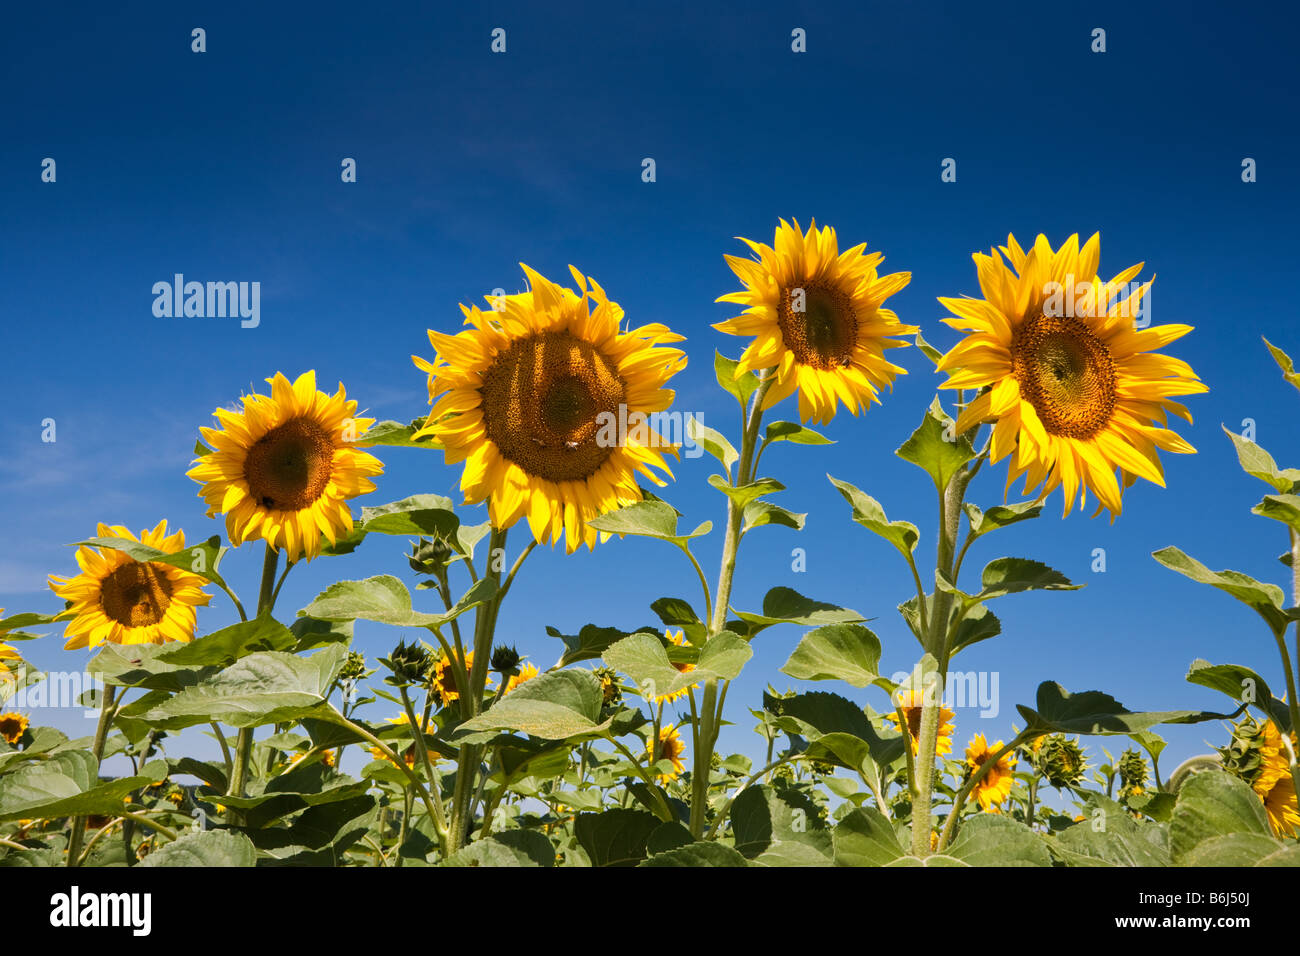 Sunflowers against a blue sky in southwest France Europe - Stock Image